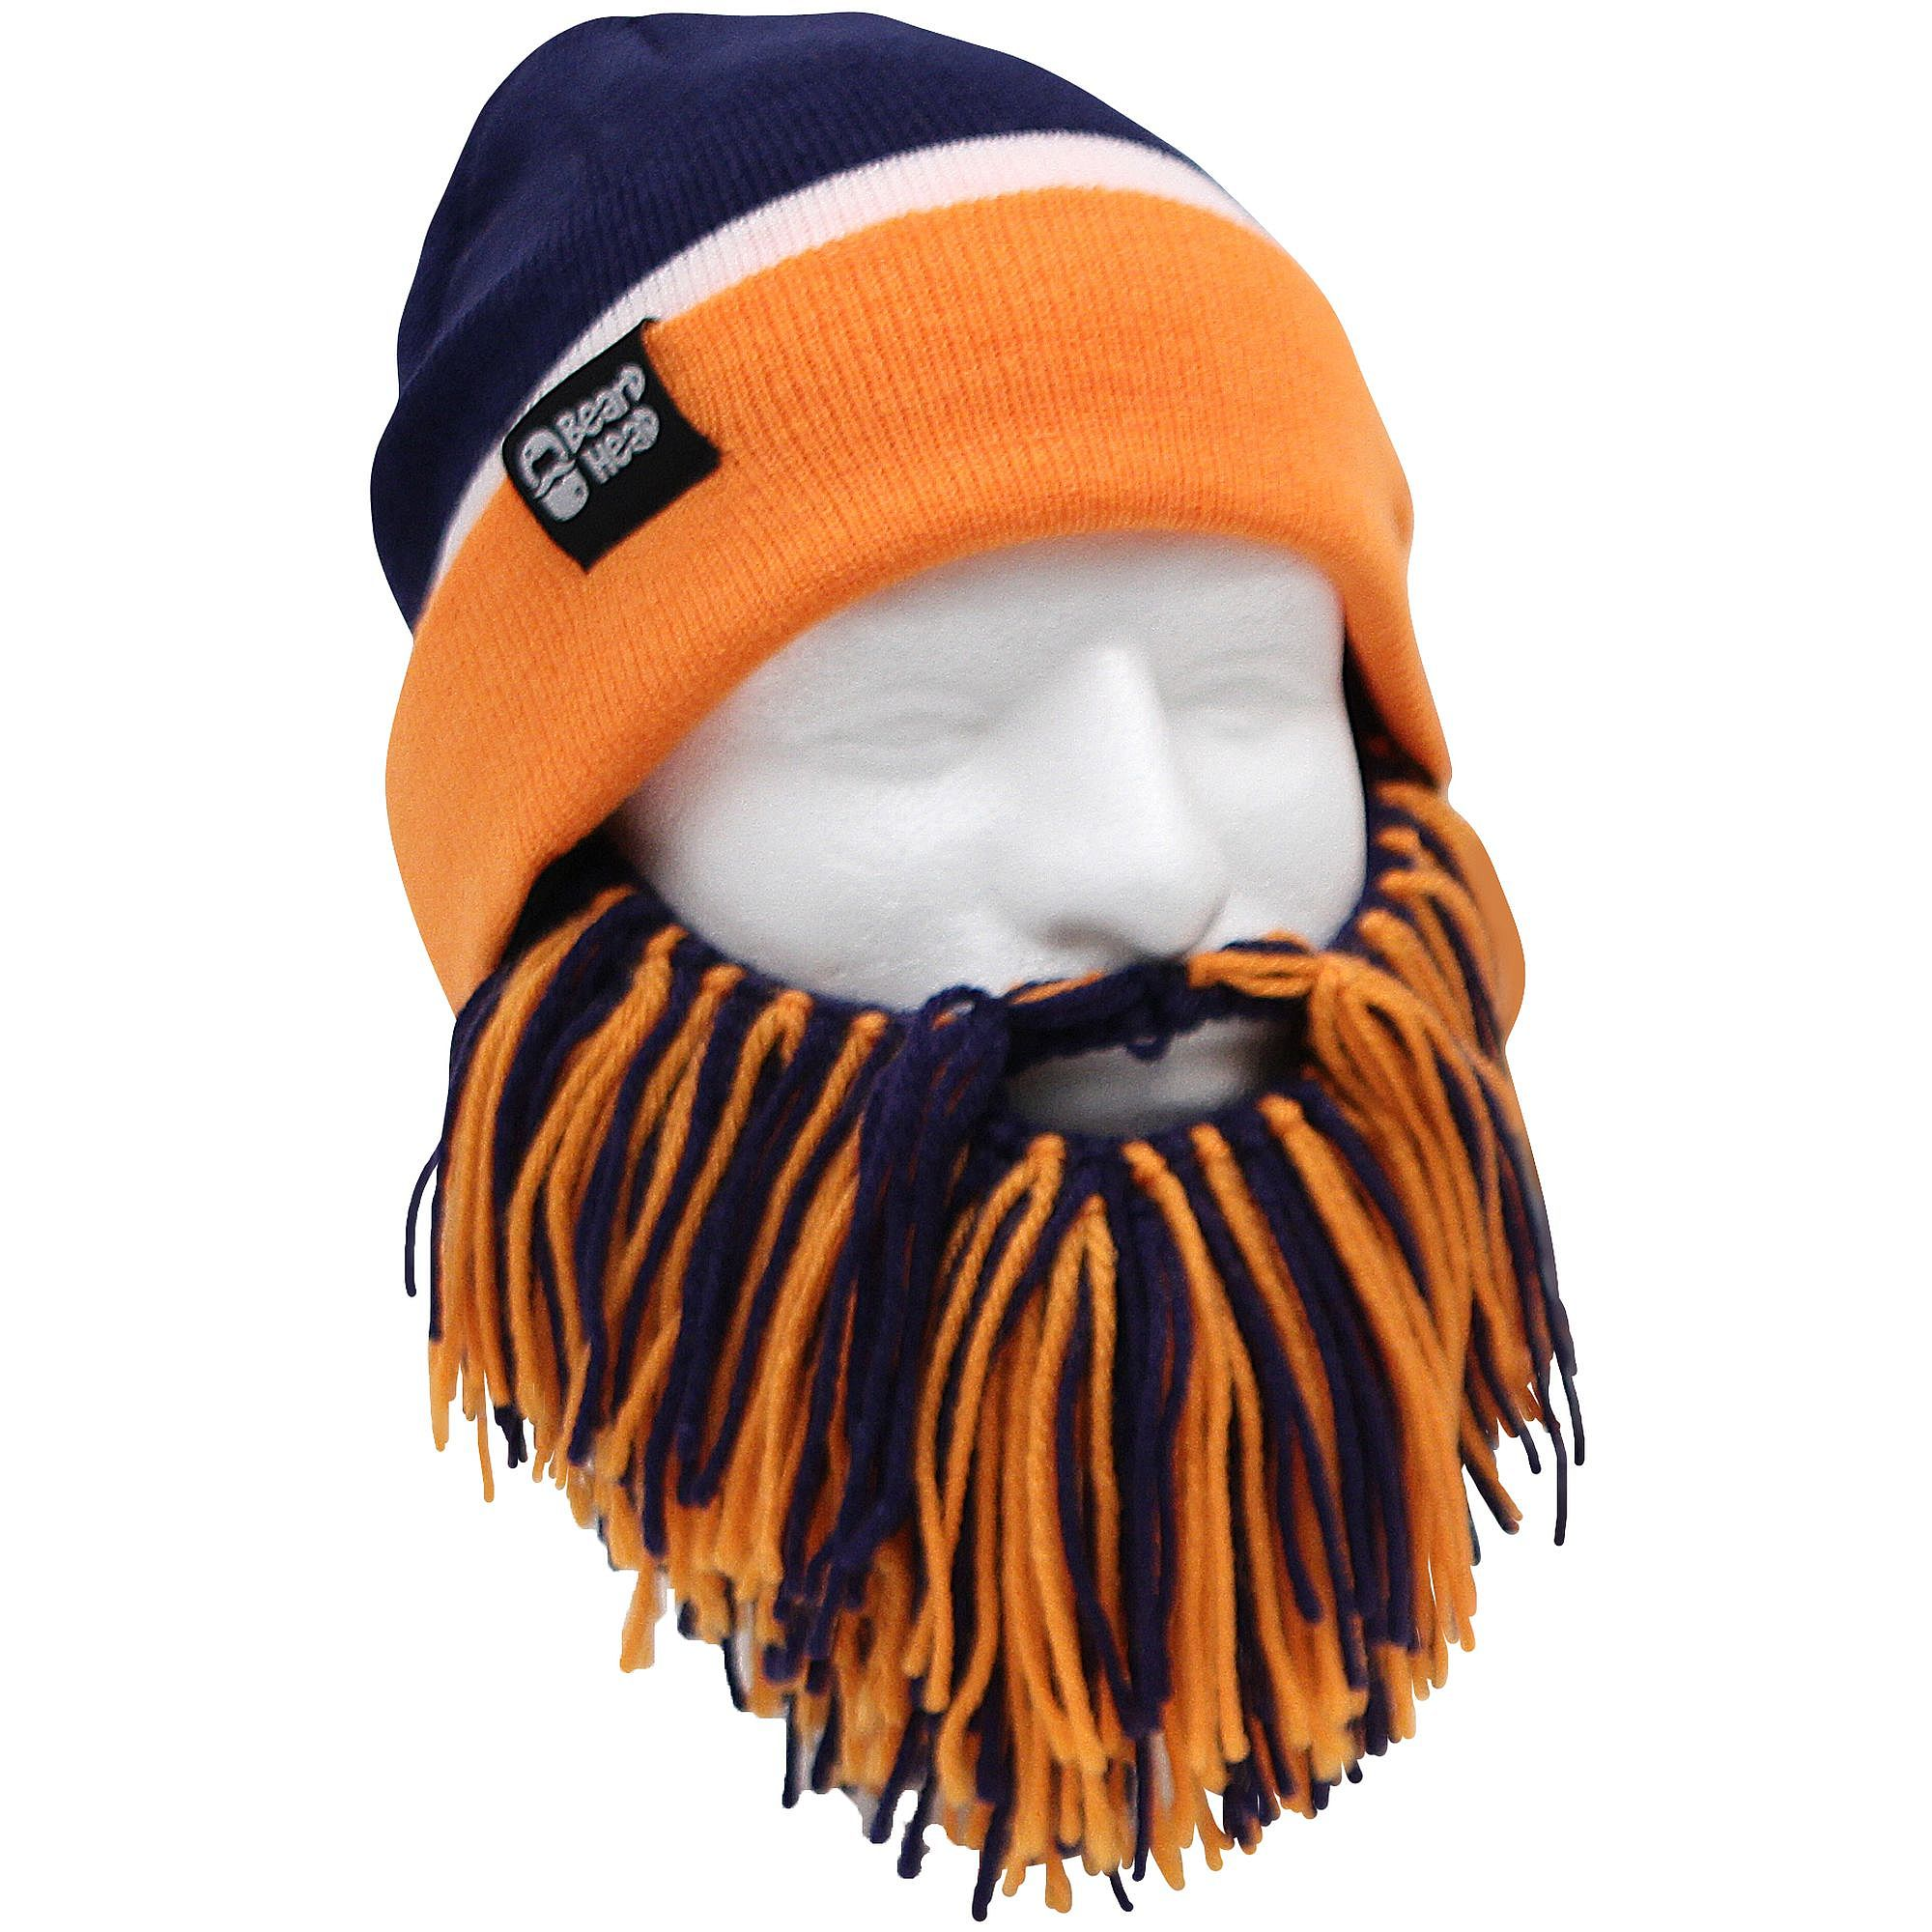 Buy low price, high quality bearded beanie hat with worldwide shipping on thrushop-9b4y6tny.ga